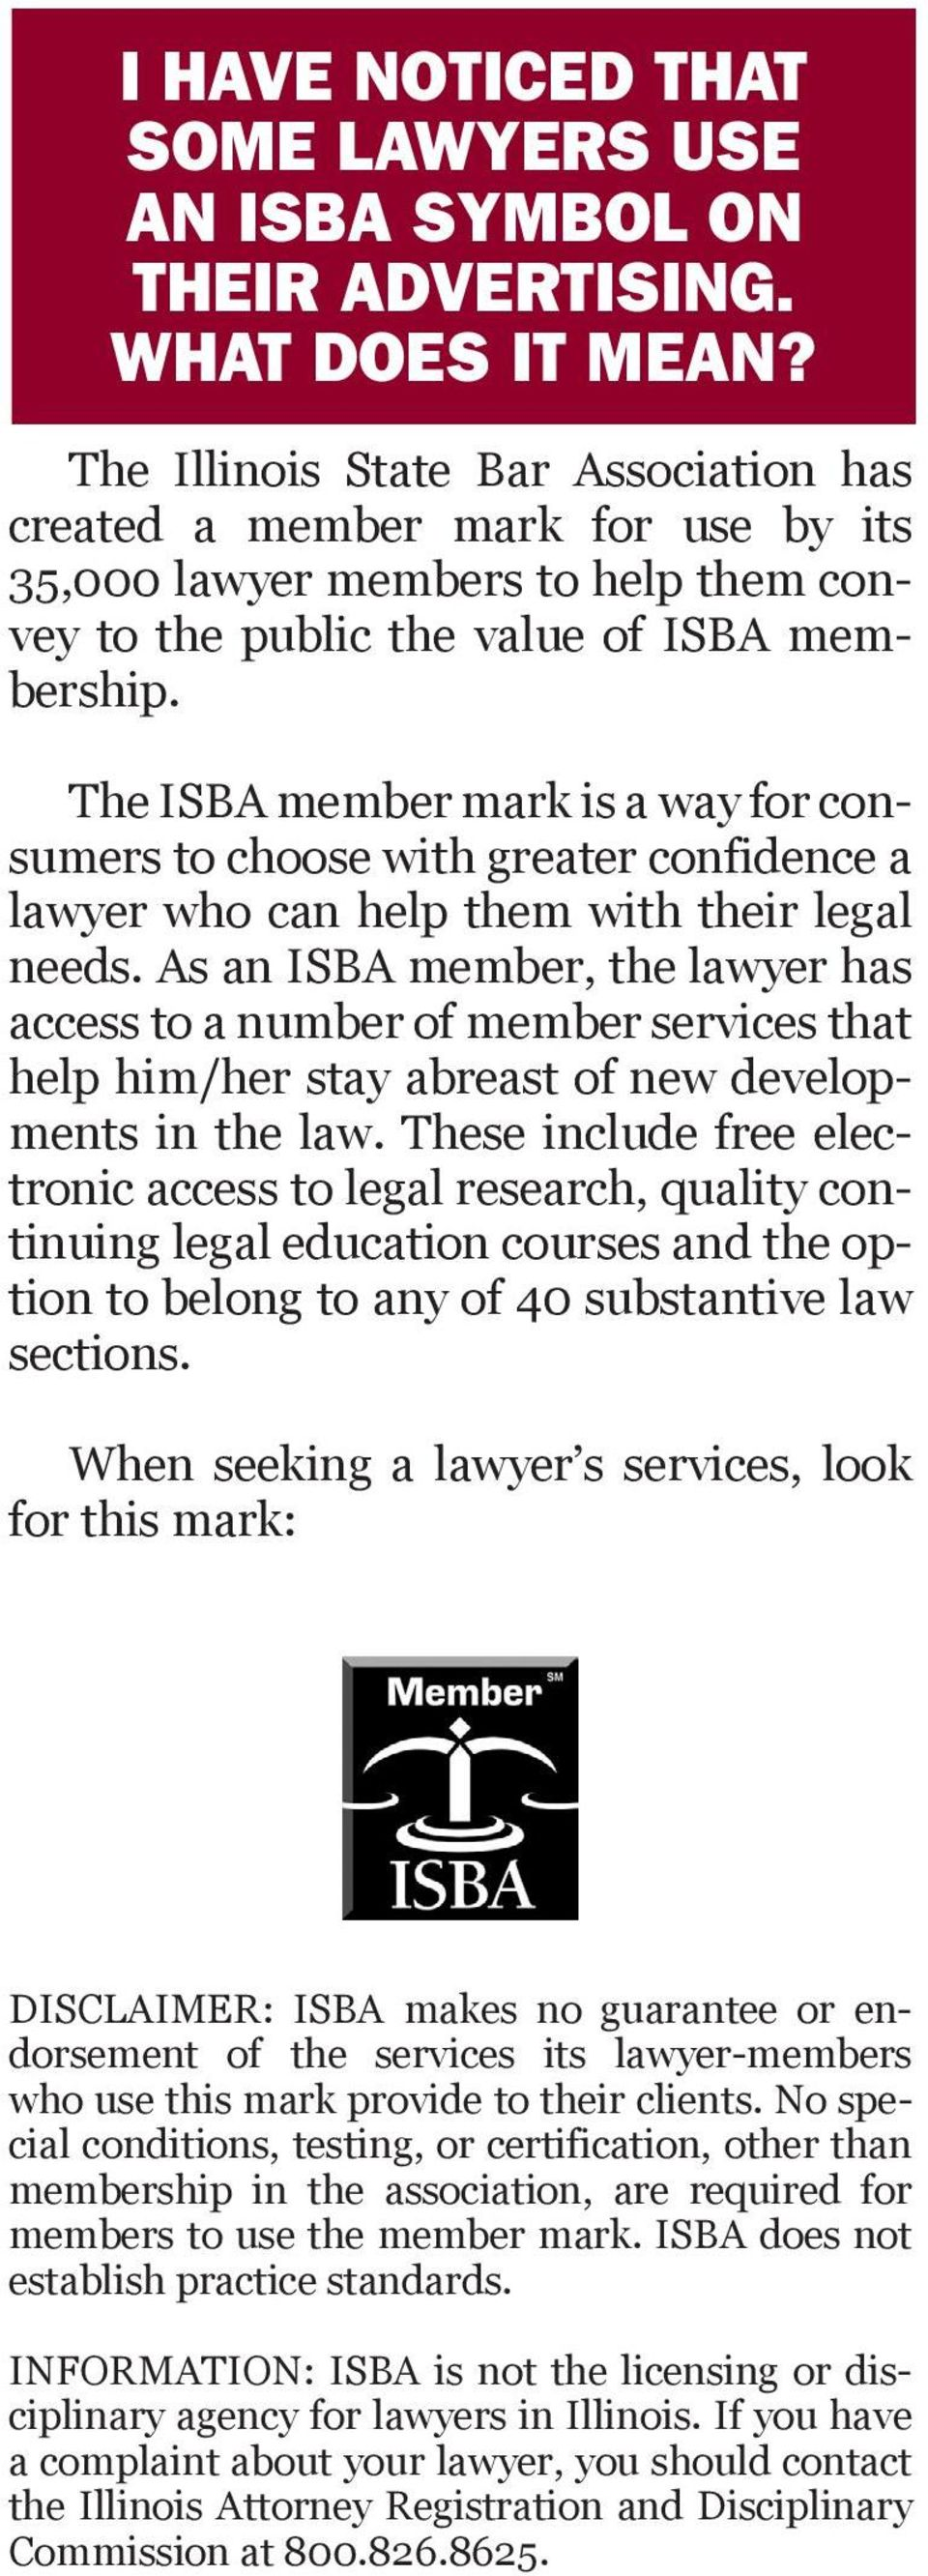 The ISBA member mark is a way for consumers to choose with greater confidence a lawyer who can help them with their legal needs.